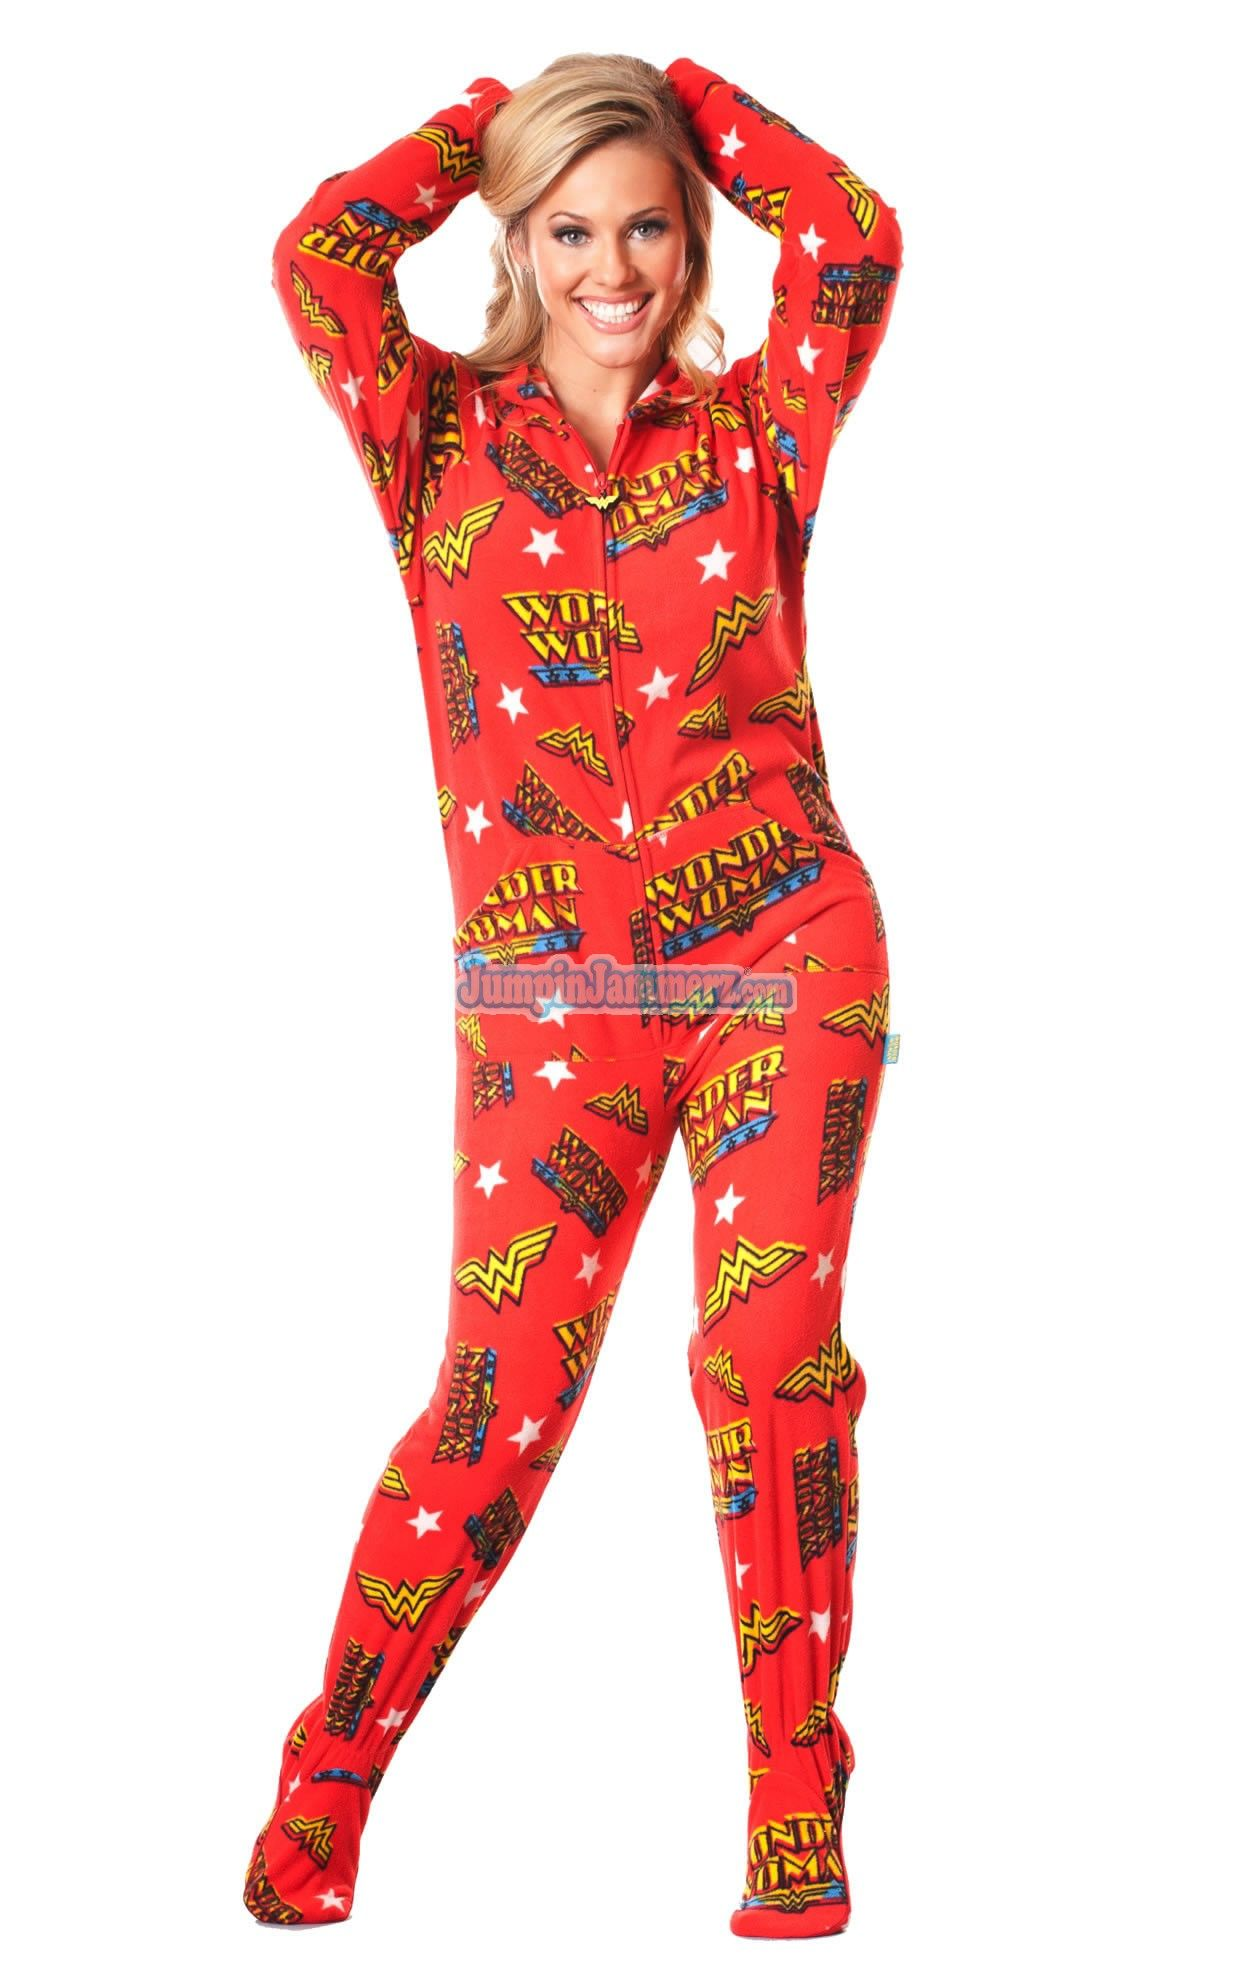 being what now can was pin long games fun playing these hooded sleeper pac more than adult sleepers one you pajamas piece in day do your a kid man all pjs video as that